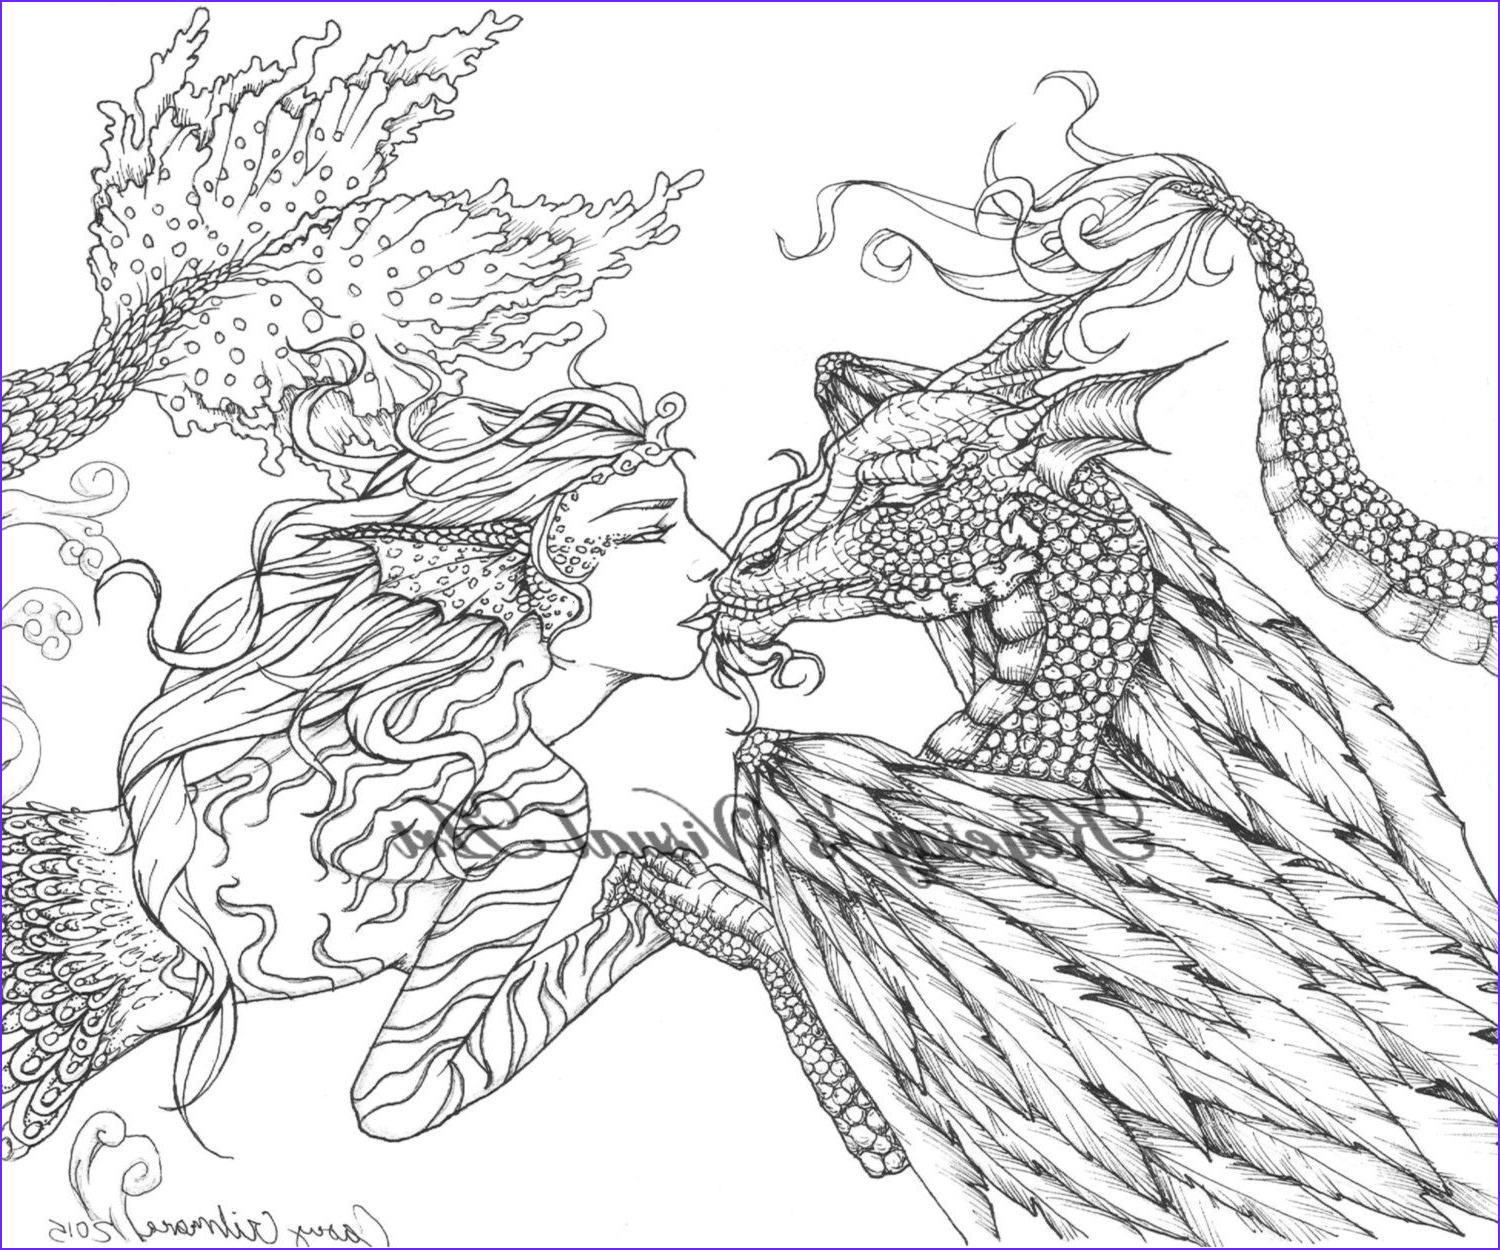 Fantasy Coloring Pages for Adults Best Of Image Adult Fantasy Colouring Pictures Google Search